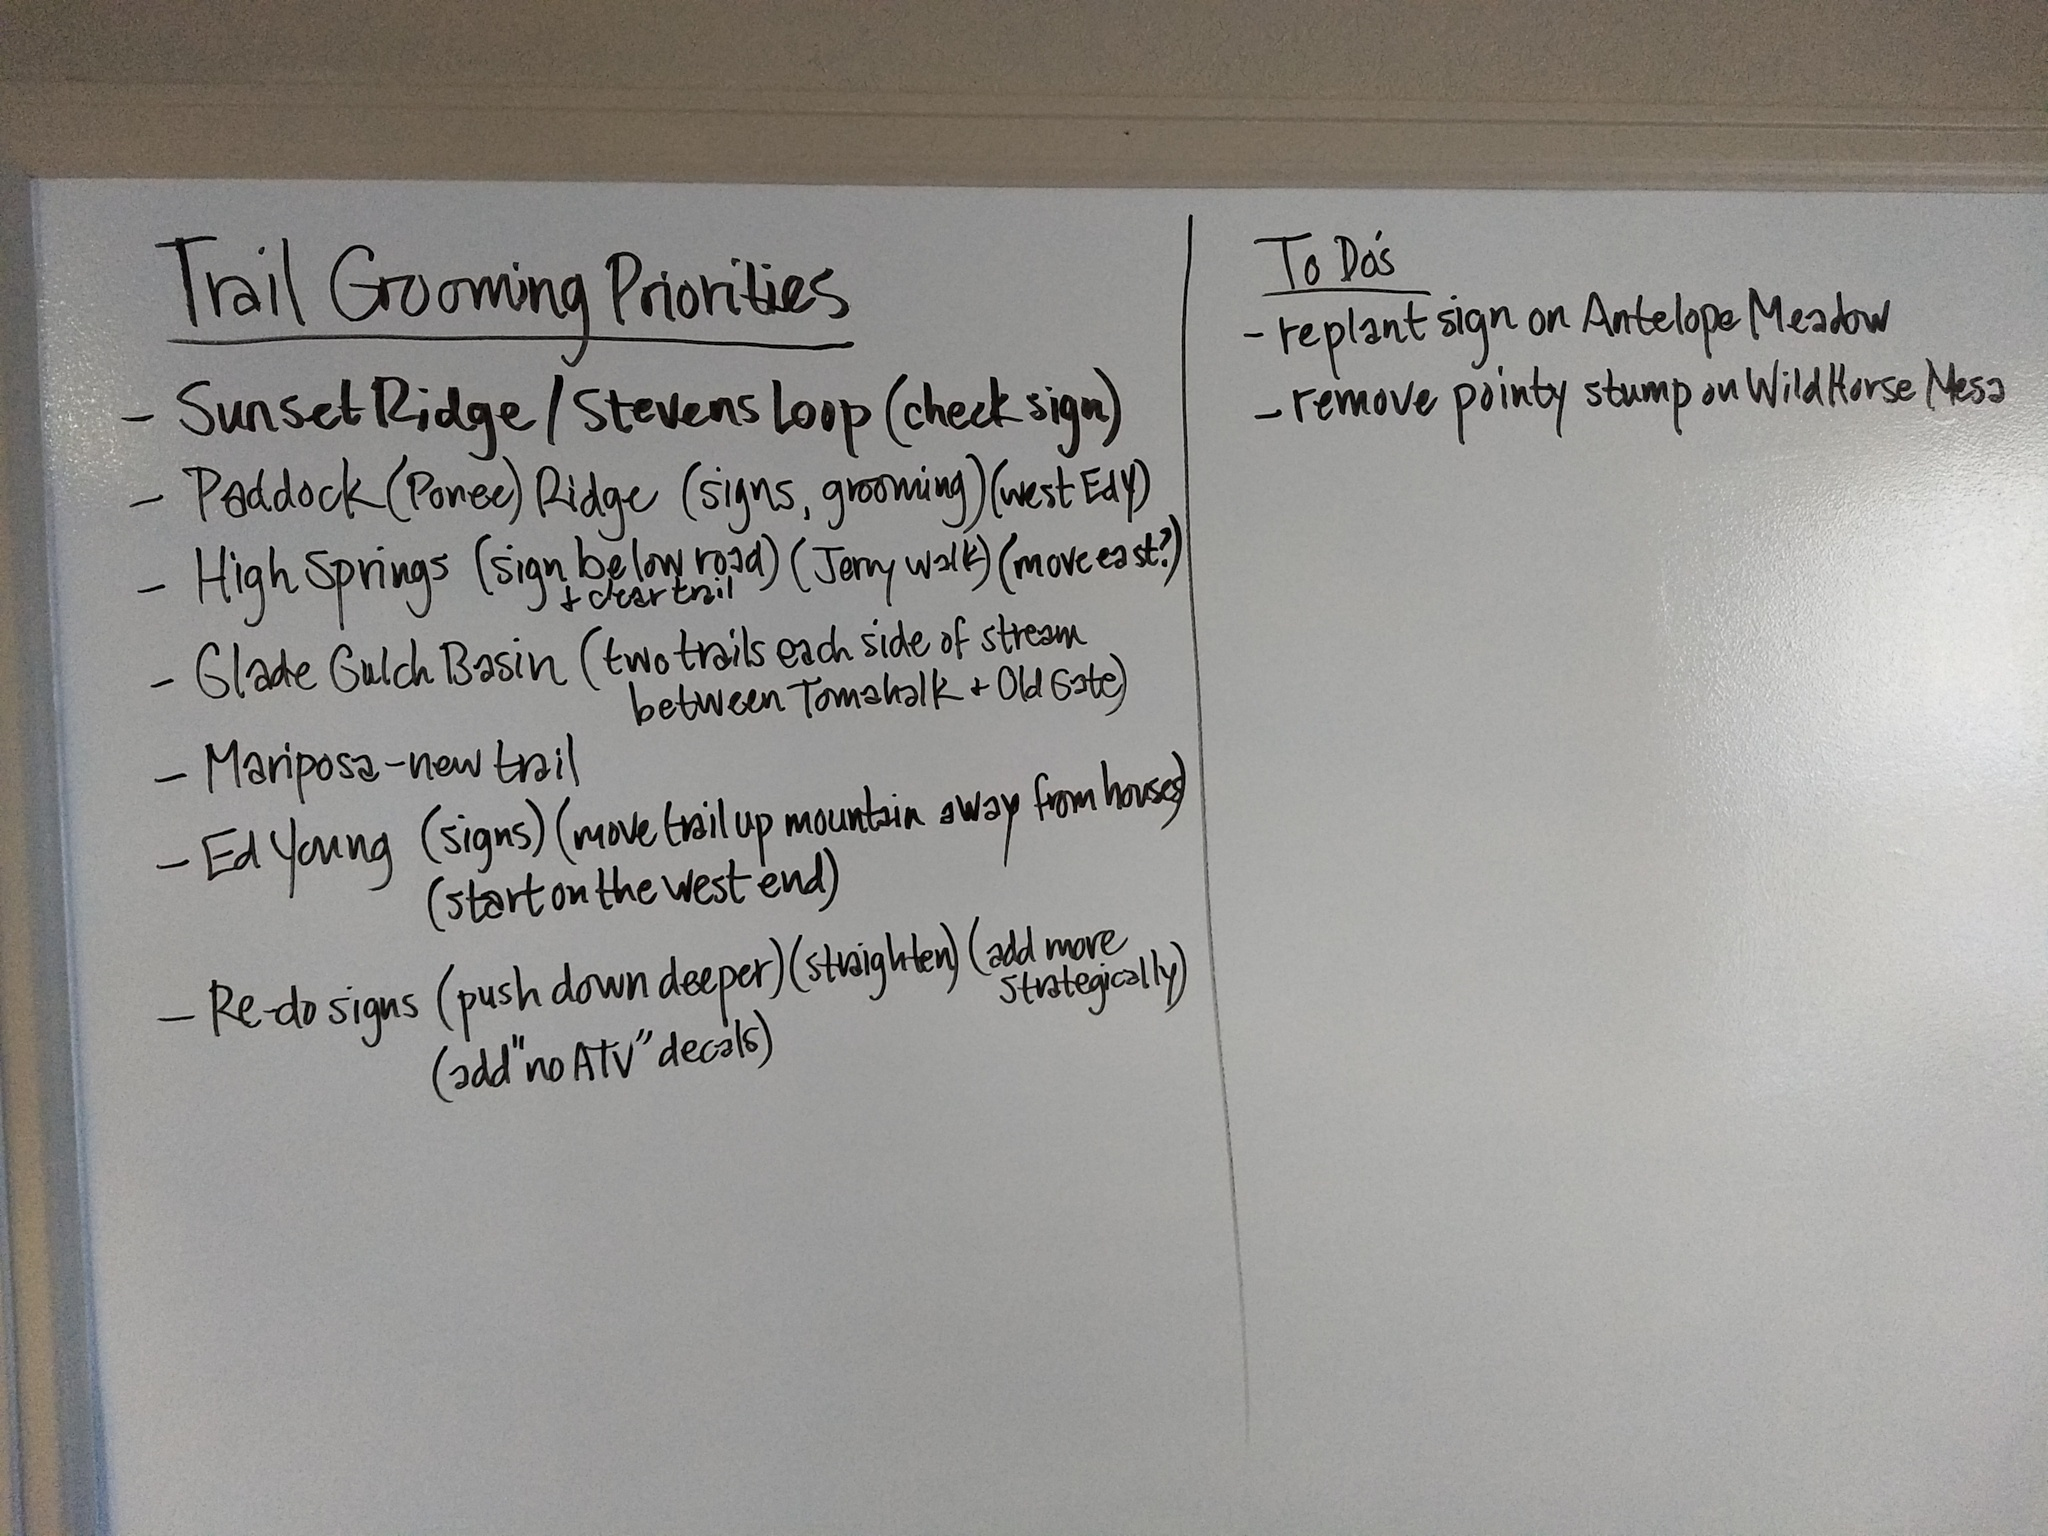 Here is our white board summary showing the key projects and tasks we have left to do this summer. Writing down a checklist especially appeals to those of us with a green/structural preference. As a team, prioritized lists keep us focused and united on what we need to accomplish.